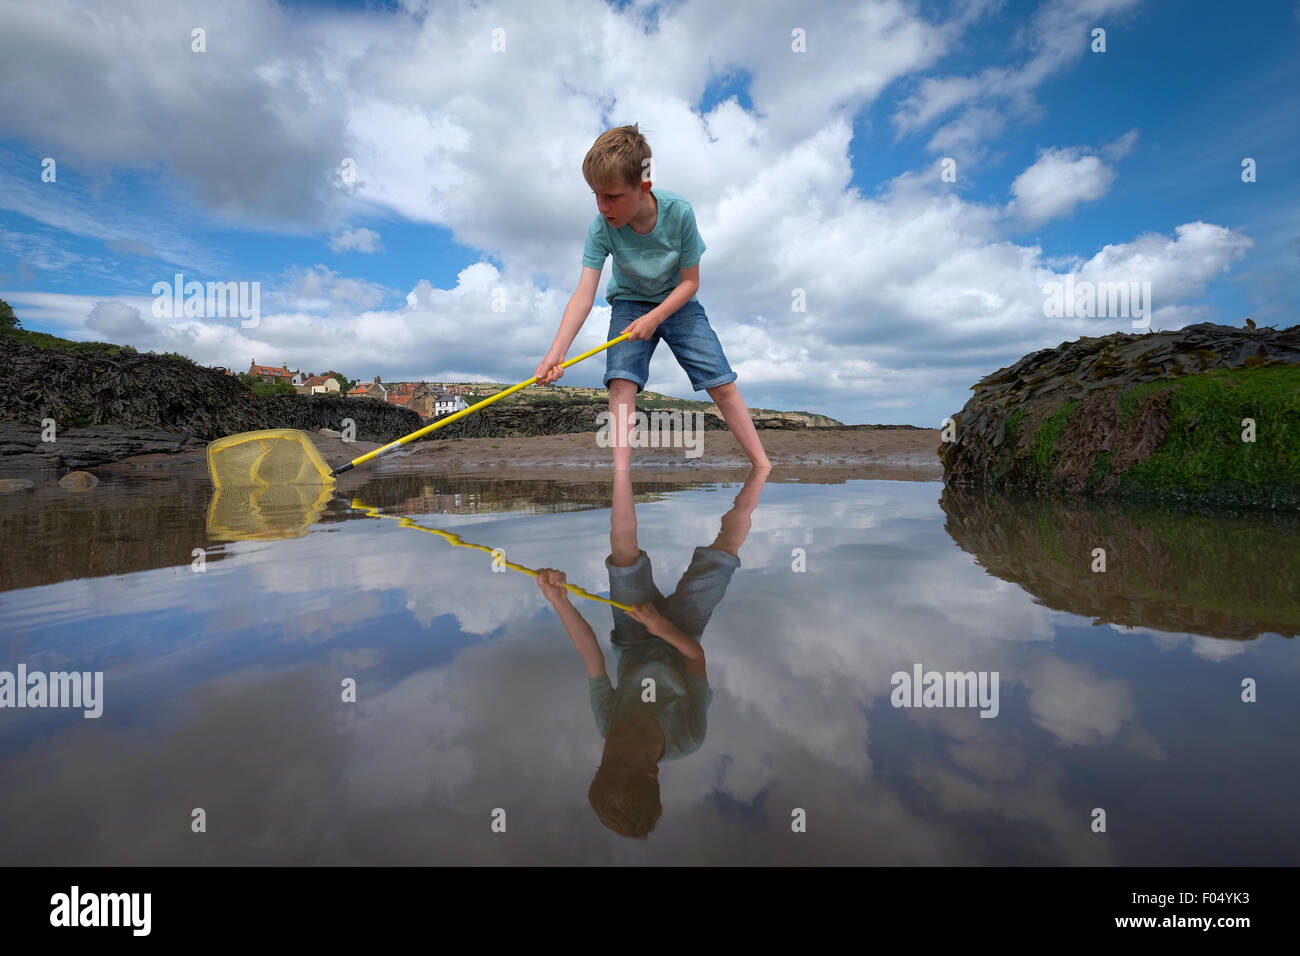 A child with a fishing net looking for fish in a rock pool at Robin Hood's Bay beach in Yorkshire, UK Stock Photo